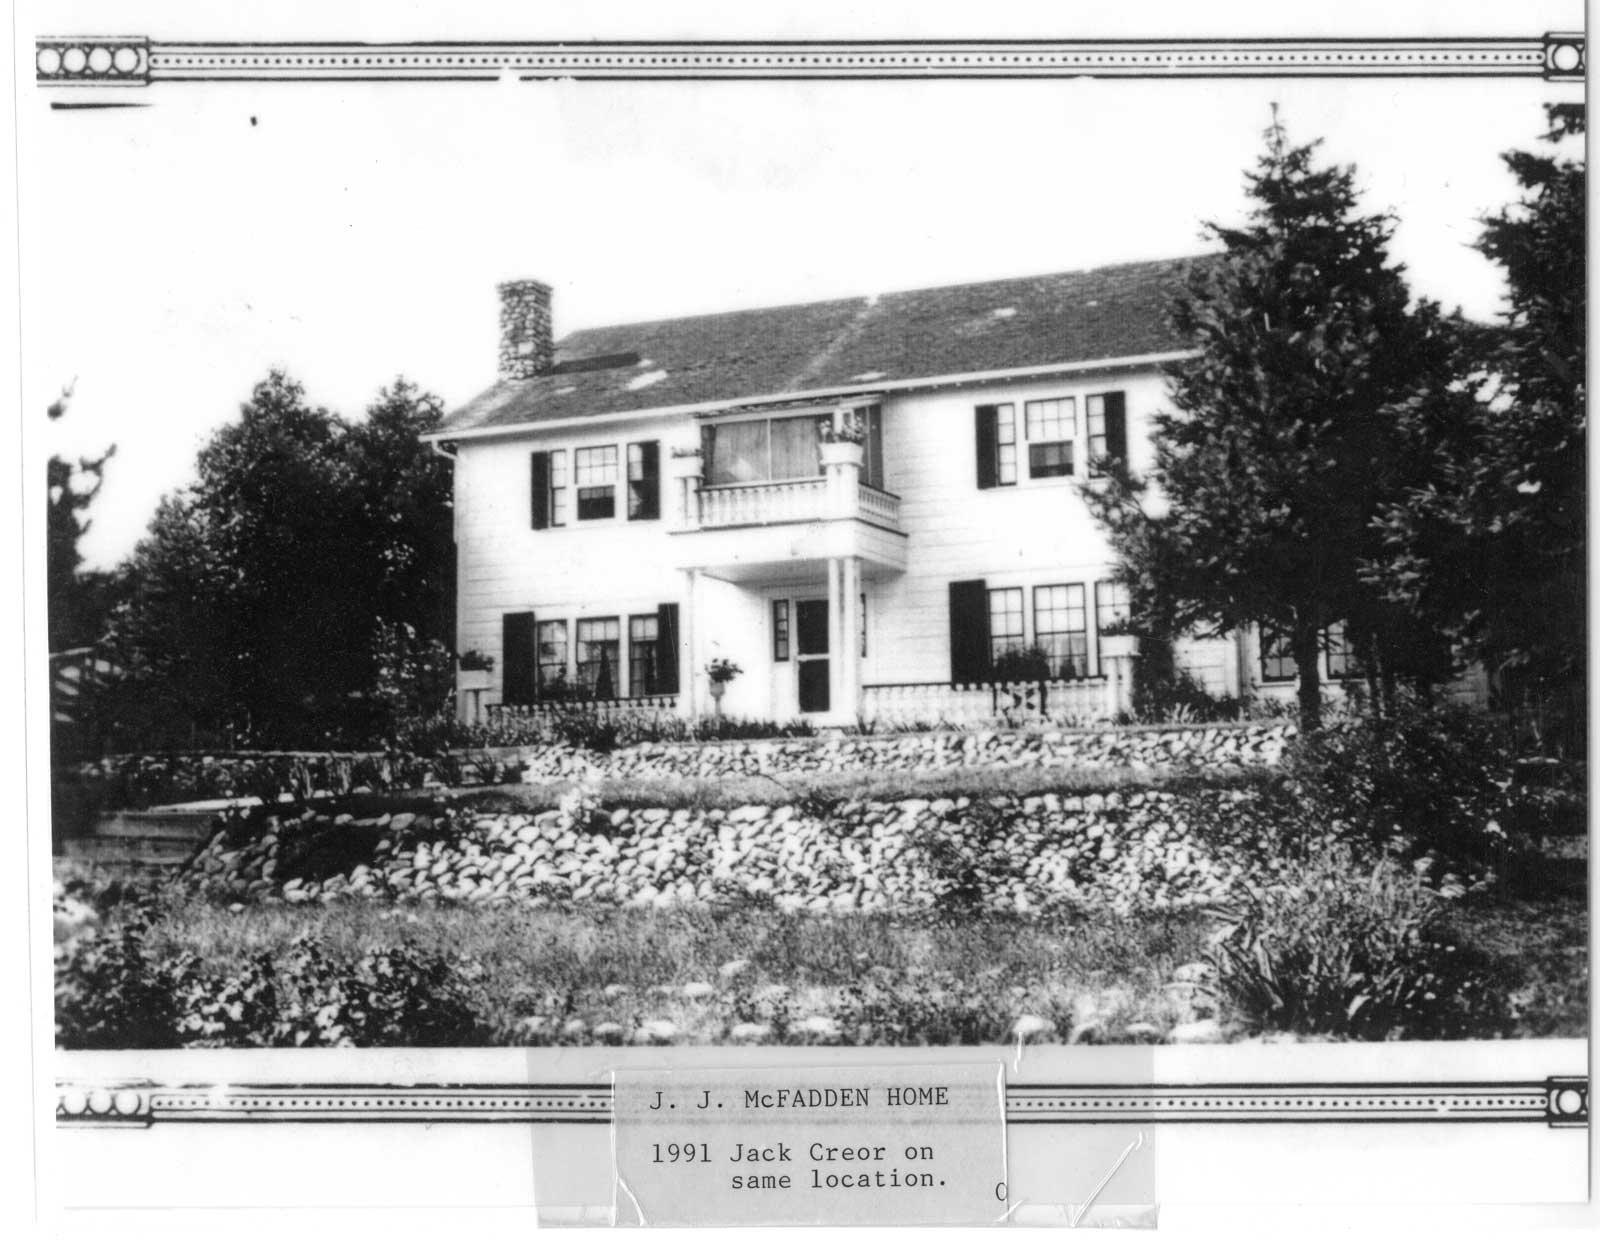 J. J. McFadden Home, Thessalon, circa 1950